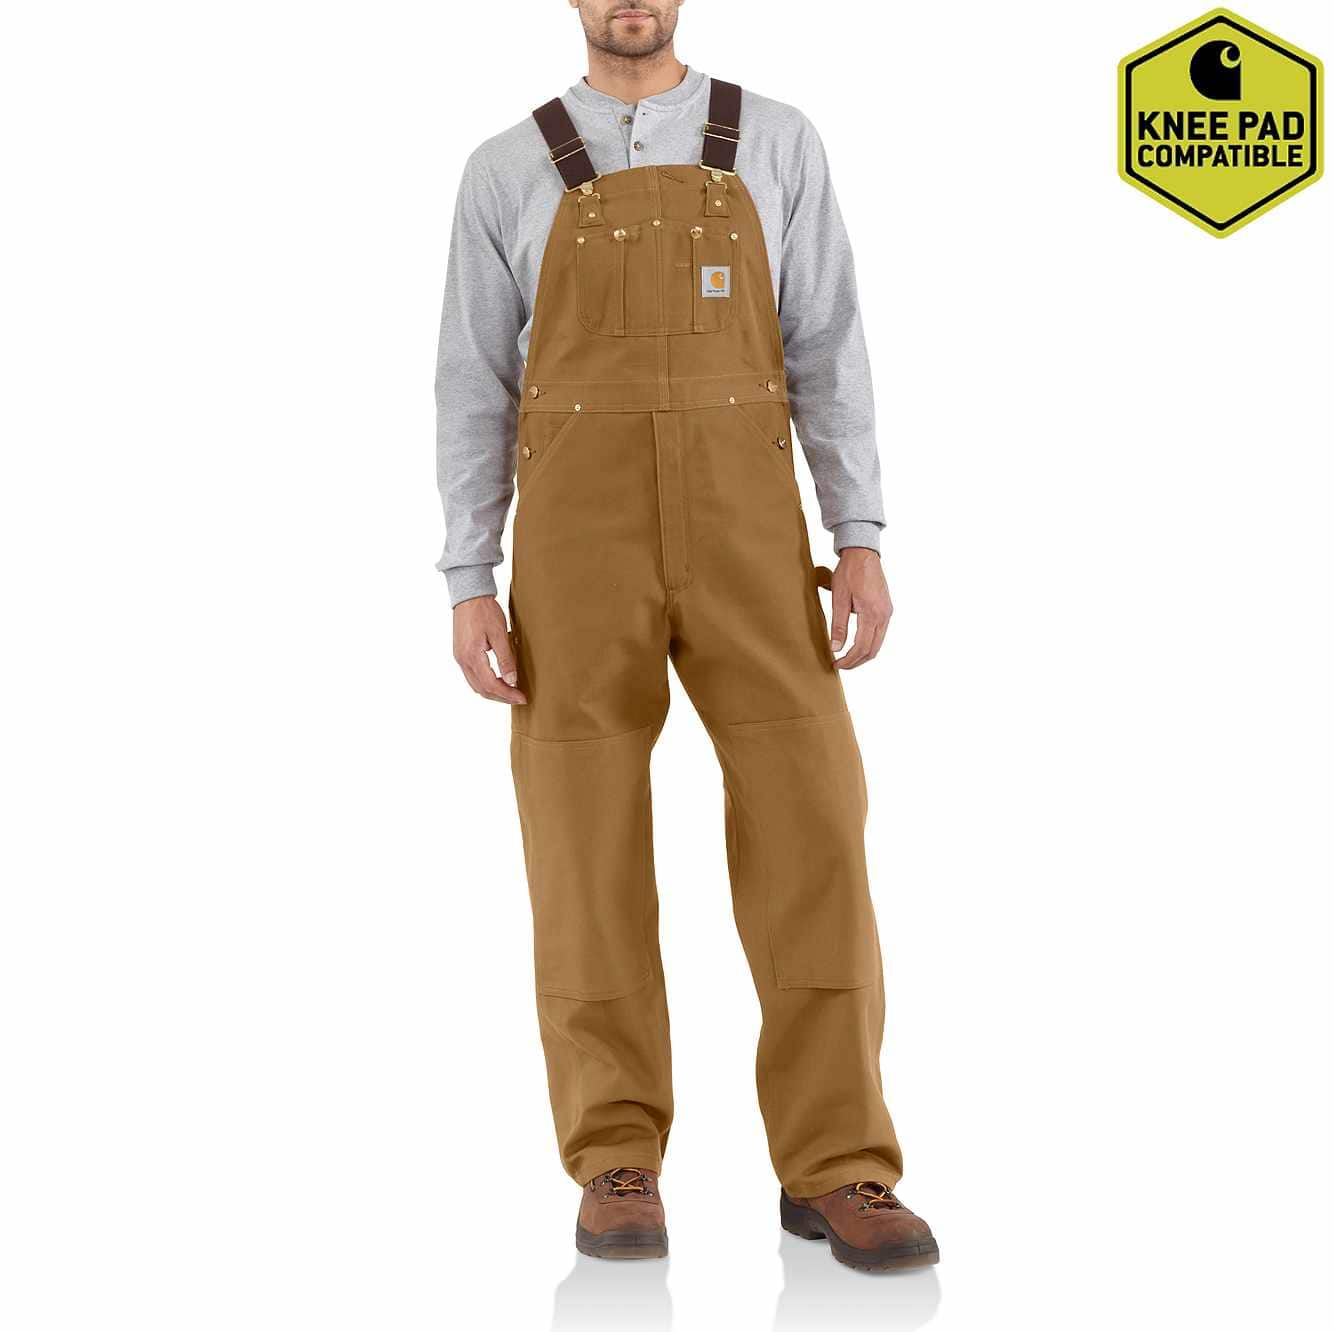 Picture of Duck Bib Overall/Unlined in Carhartt Brown